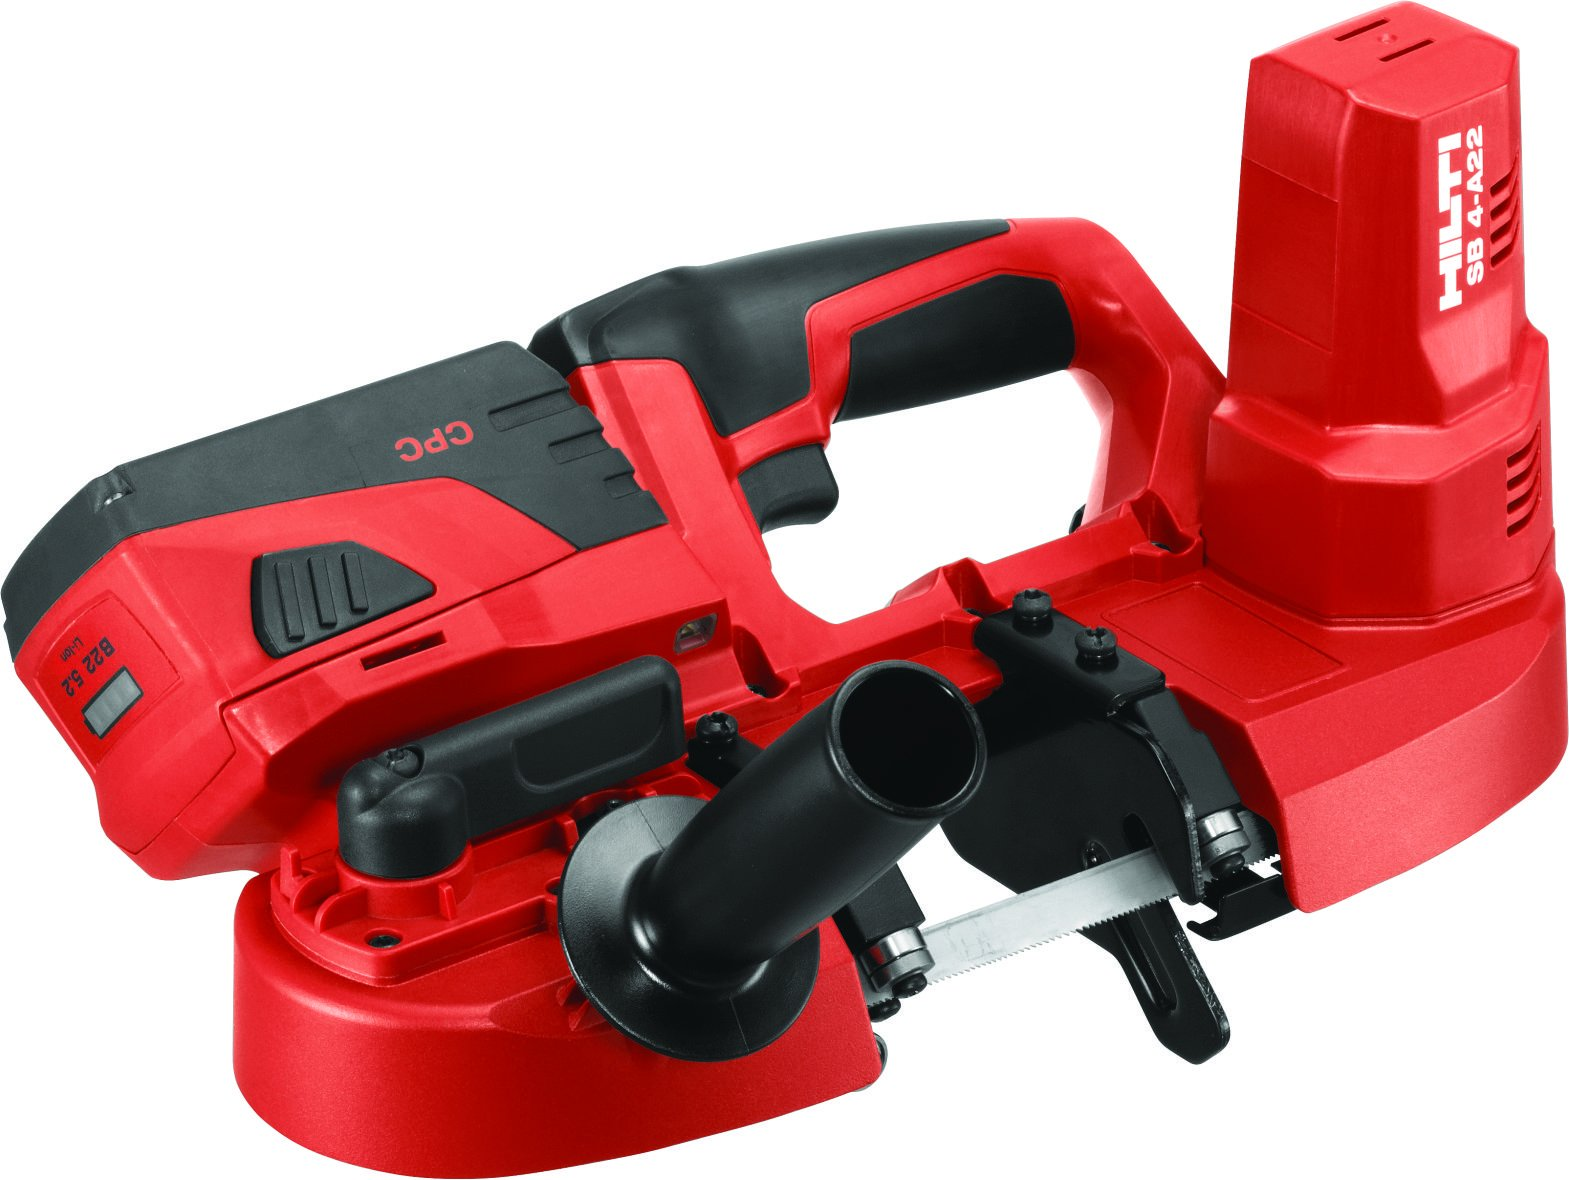 SB 4-A22 Cordless band saw with 22V battery and LED light, for cutting thicknesses up to 64 mm (2 1/2'')